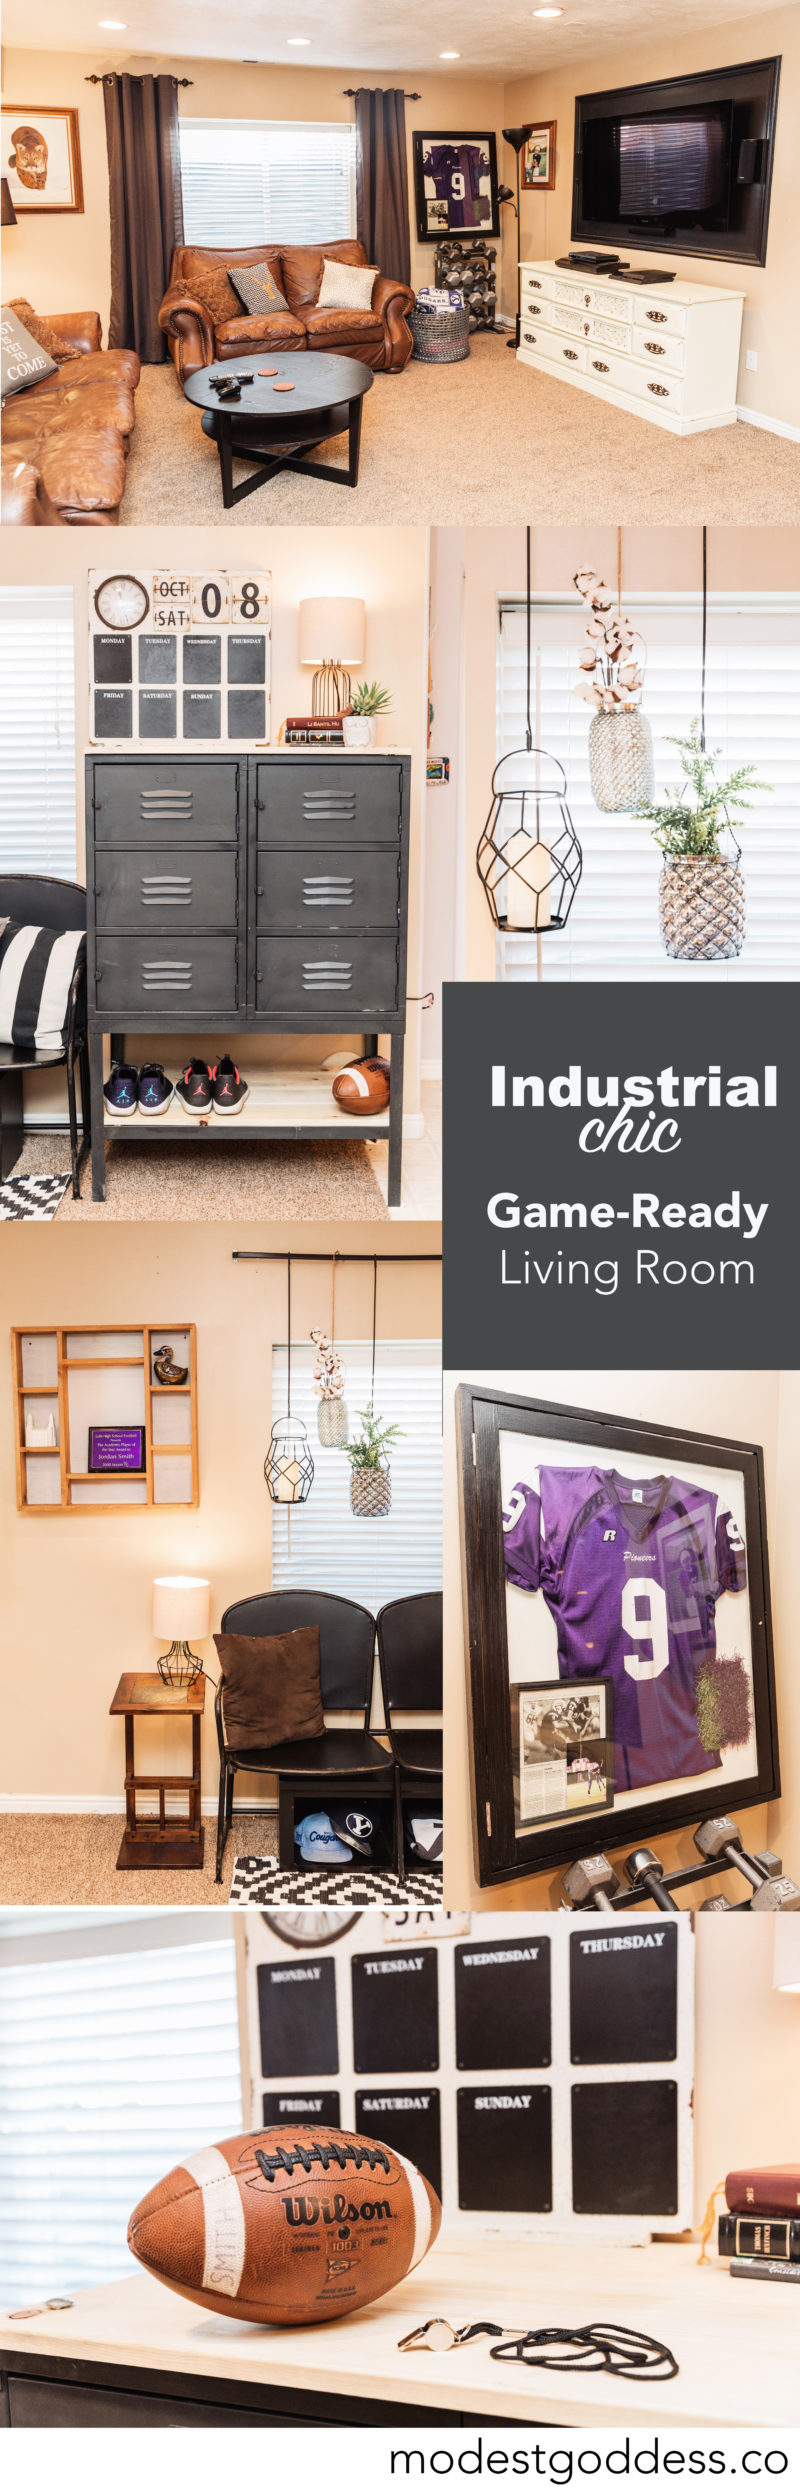 Industrial Chic Game-Ready Living Room